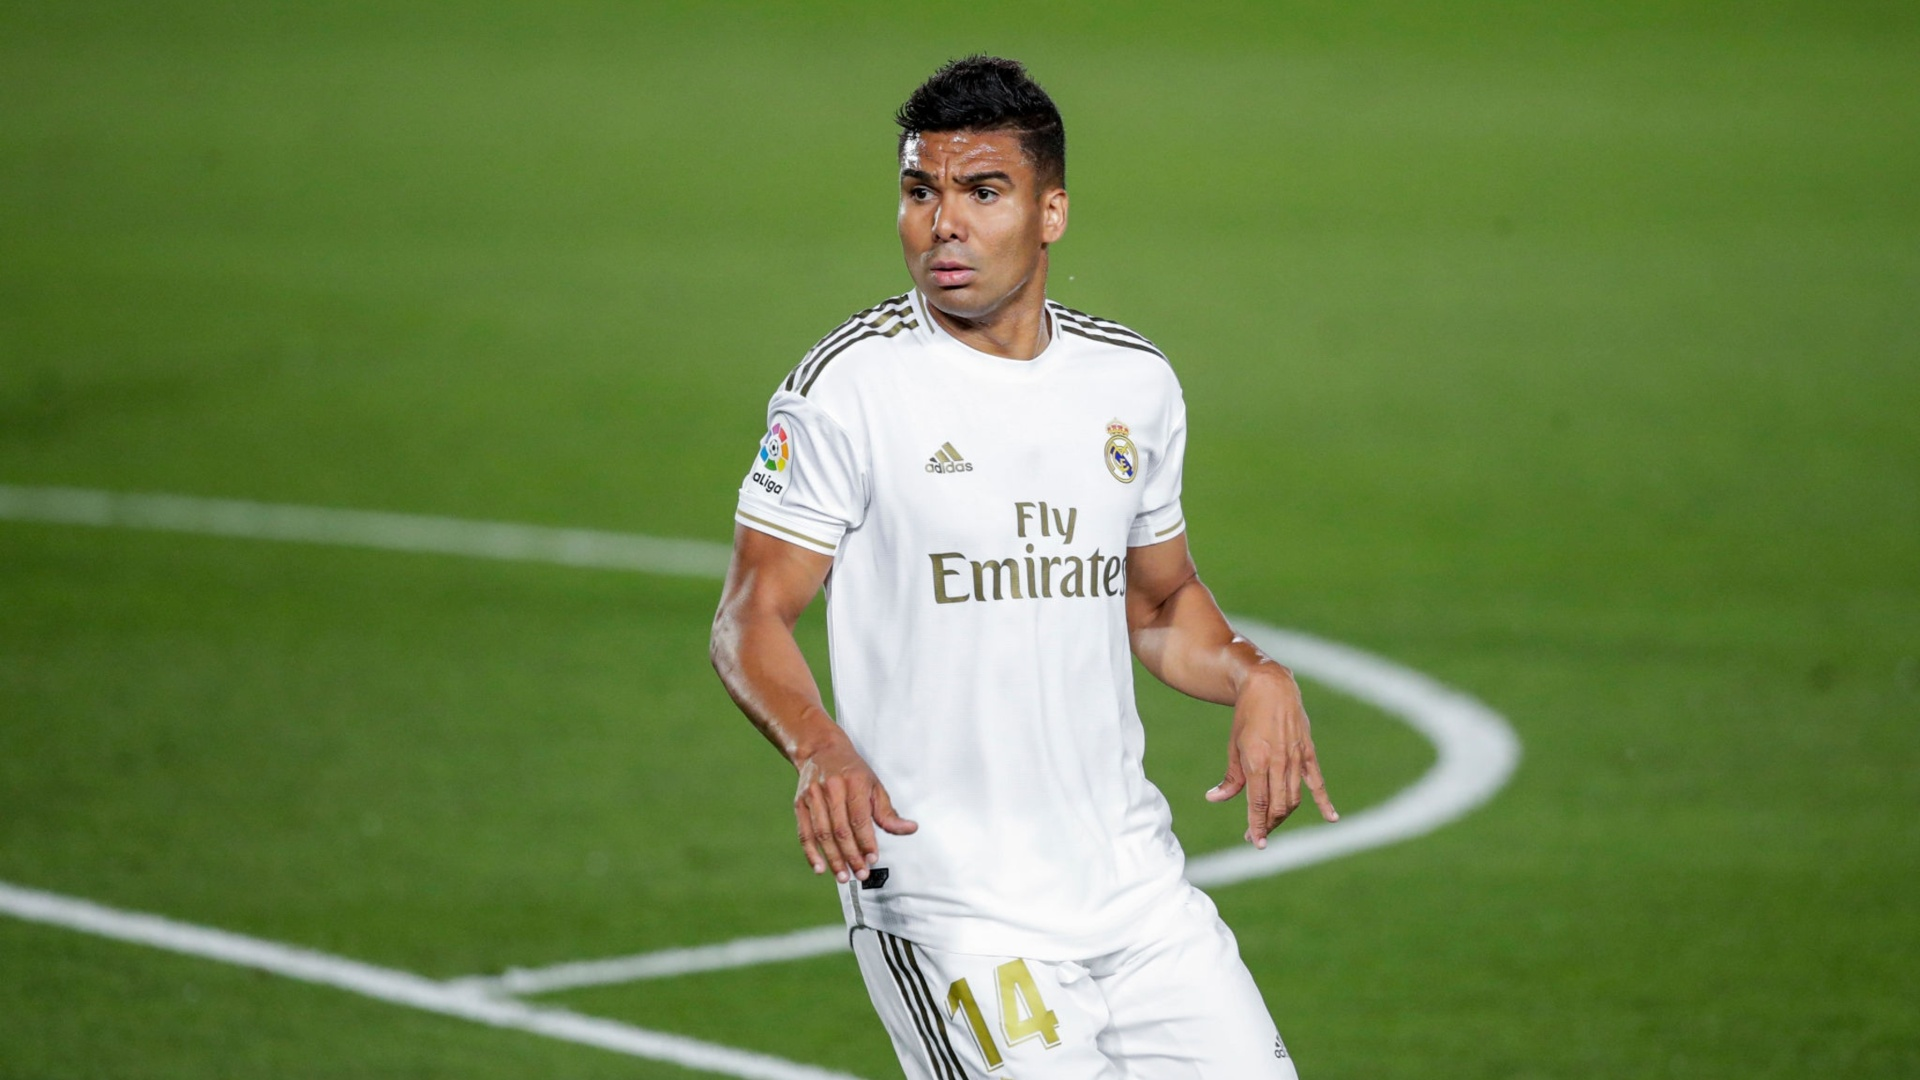 Casemiro still without a replacement, as Real set sights on Camavinga